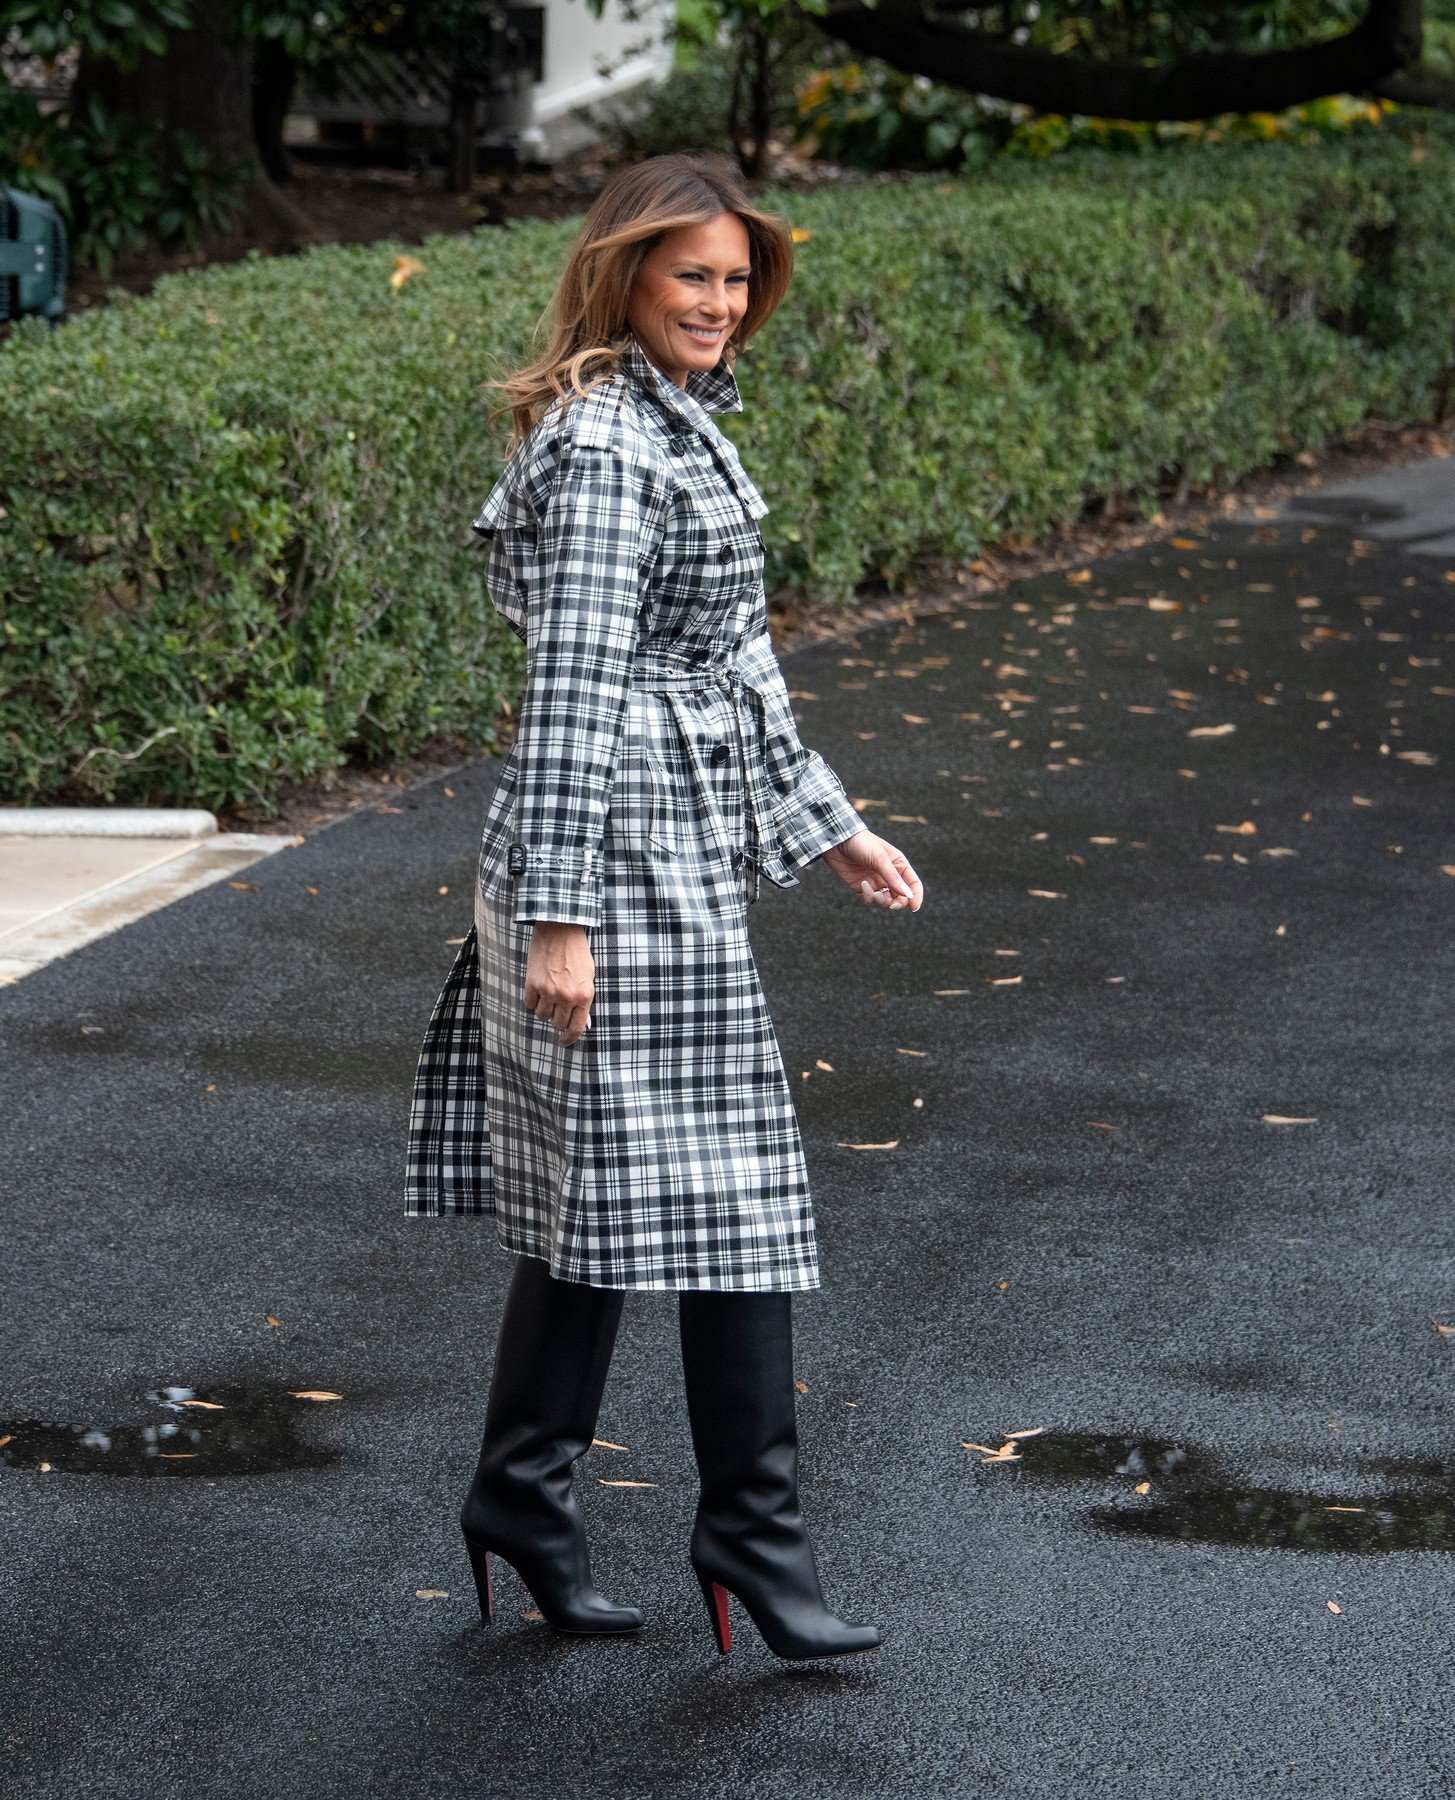 First lady Melania Trump emerges from the residence to join United States President Donald J. Trump as they depart the South Lawn of the White House in Washington, DC on Friday, November 9, 2018 en route to Paris, France where they will participate in the ceremonies commemorating the 100th anniversary of the end of World War I., Image: 395037585, License: Rights-managed, Restrictions: , Model Release: no, Credit line: Profimedia, ADMedia